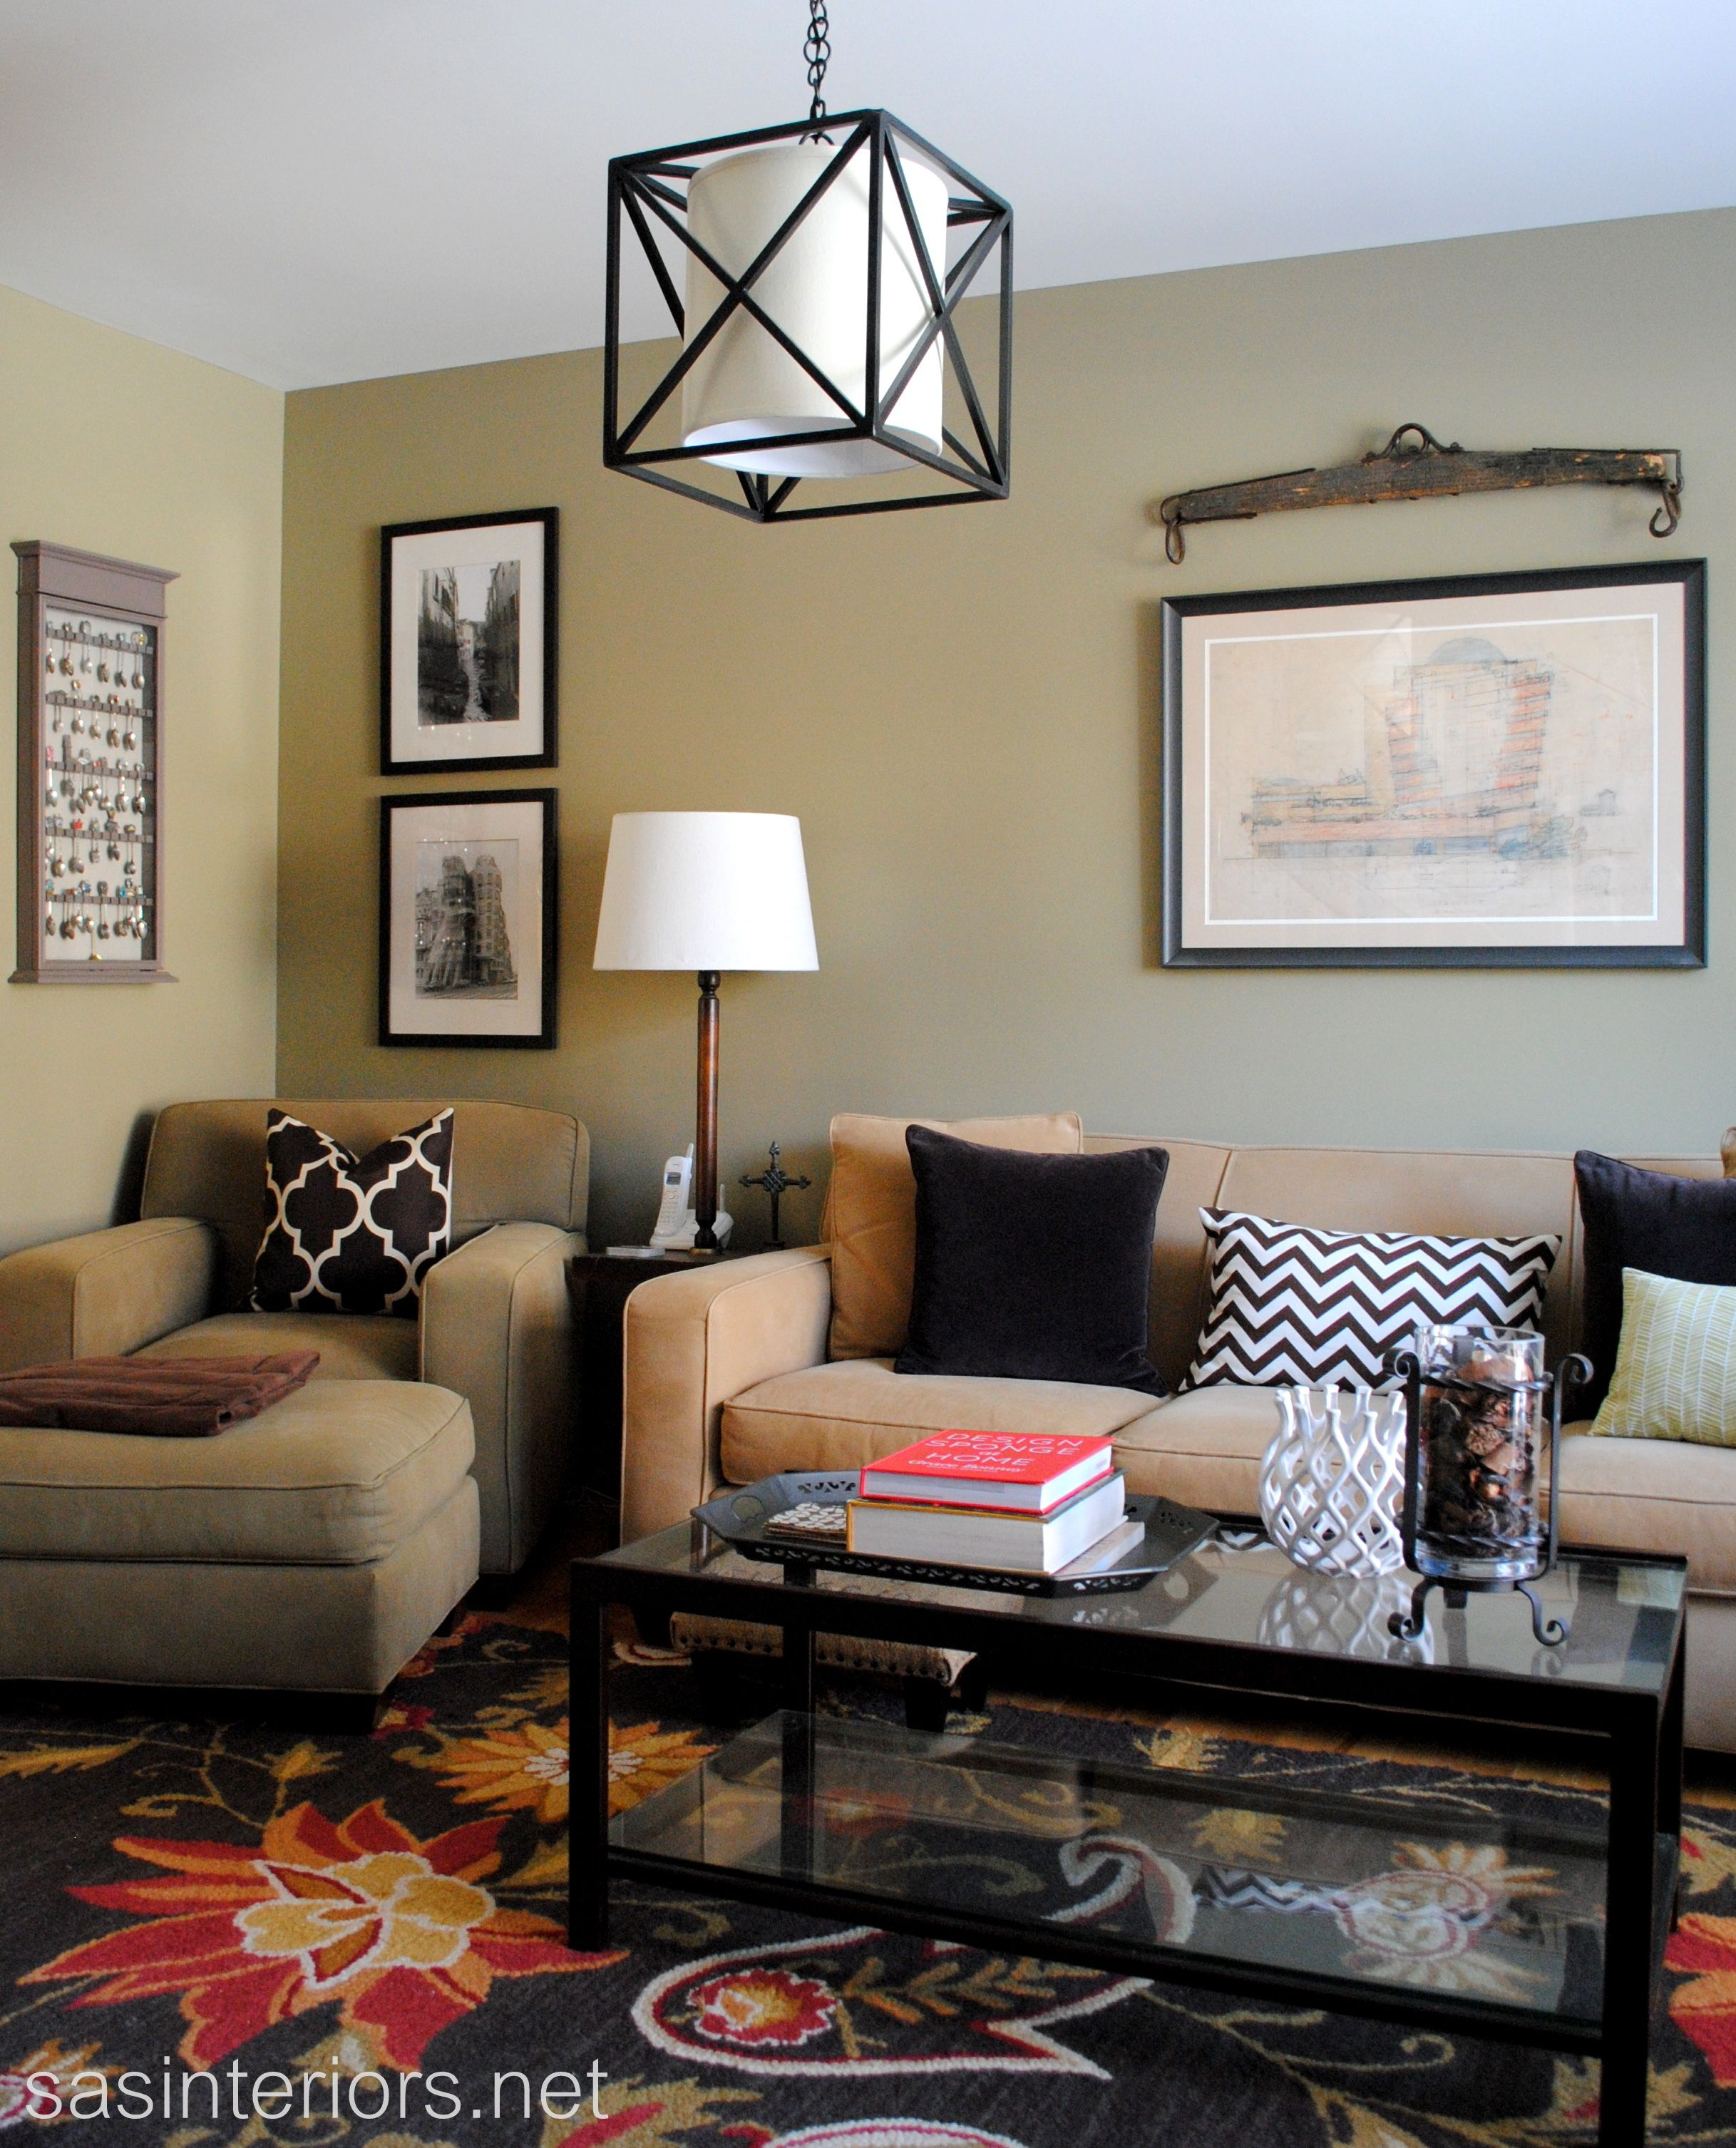 front room design ideas | Photo Gallery of the Front Room Painting ...